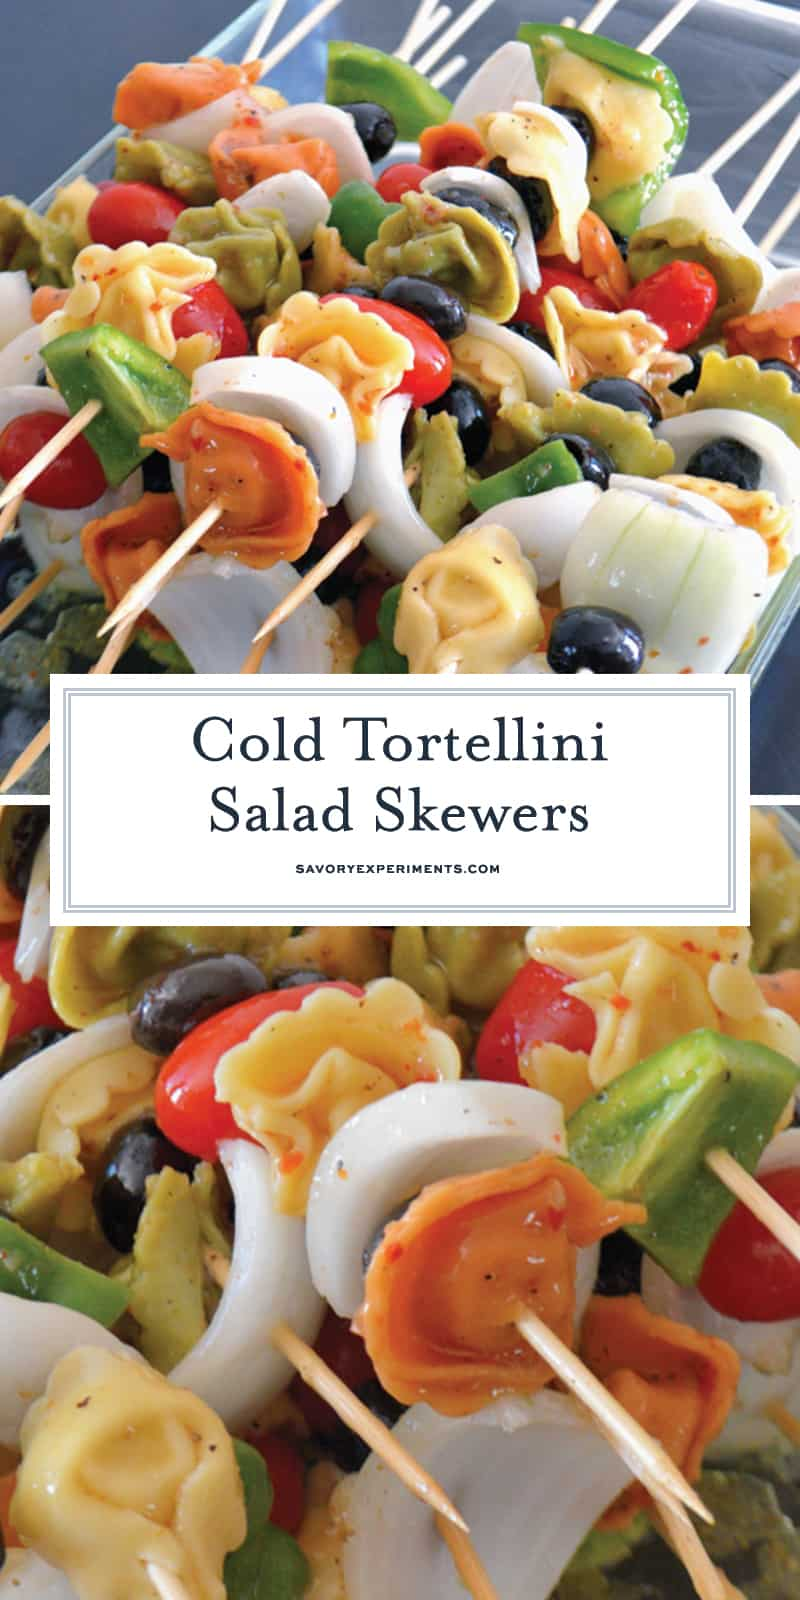 Cold Tortellini Salad Kabobs are a mouth-watering pasta salad served simply, on a stick. They are the perfect snack to serve at a bbq or get together.